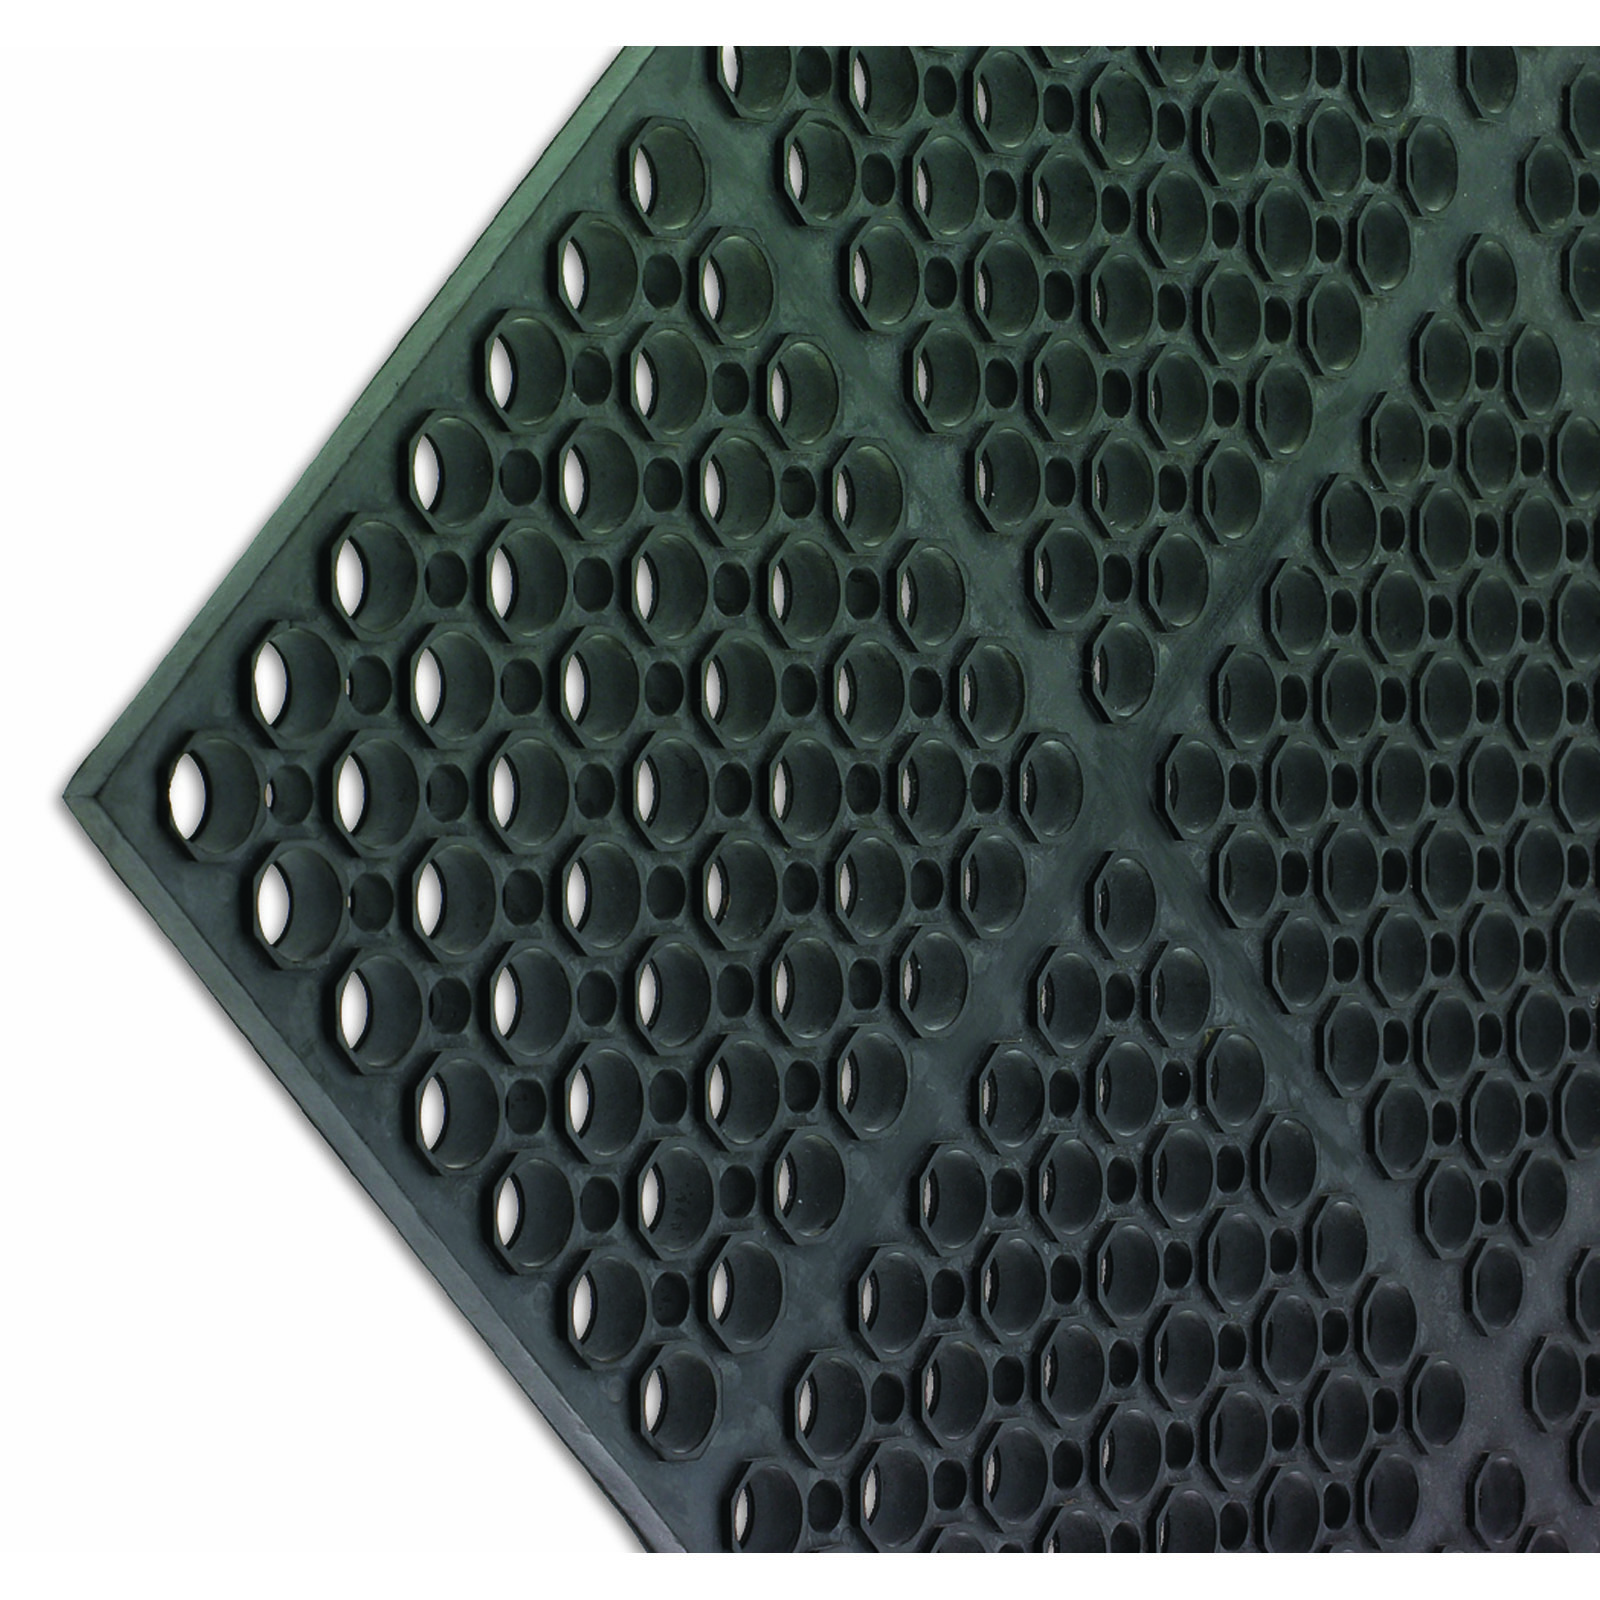 San Jamar KM2100 floor mat, anti-fatigue